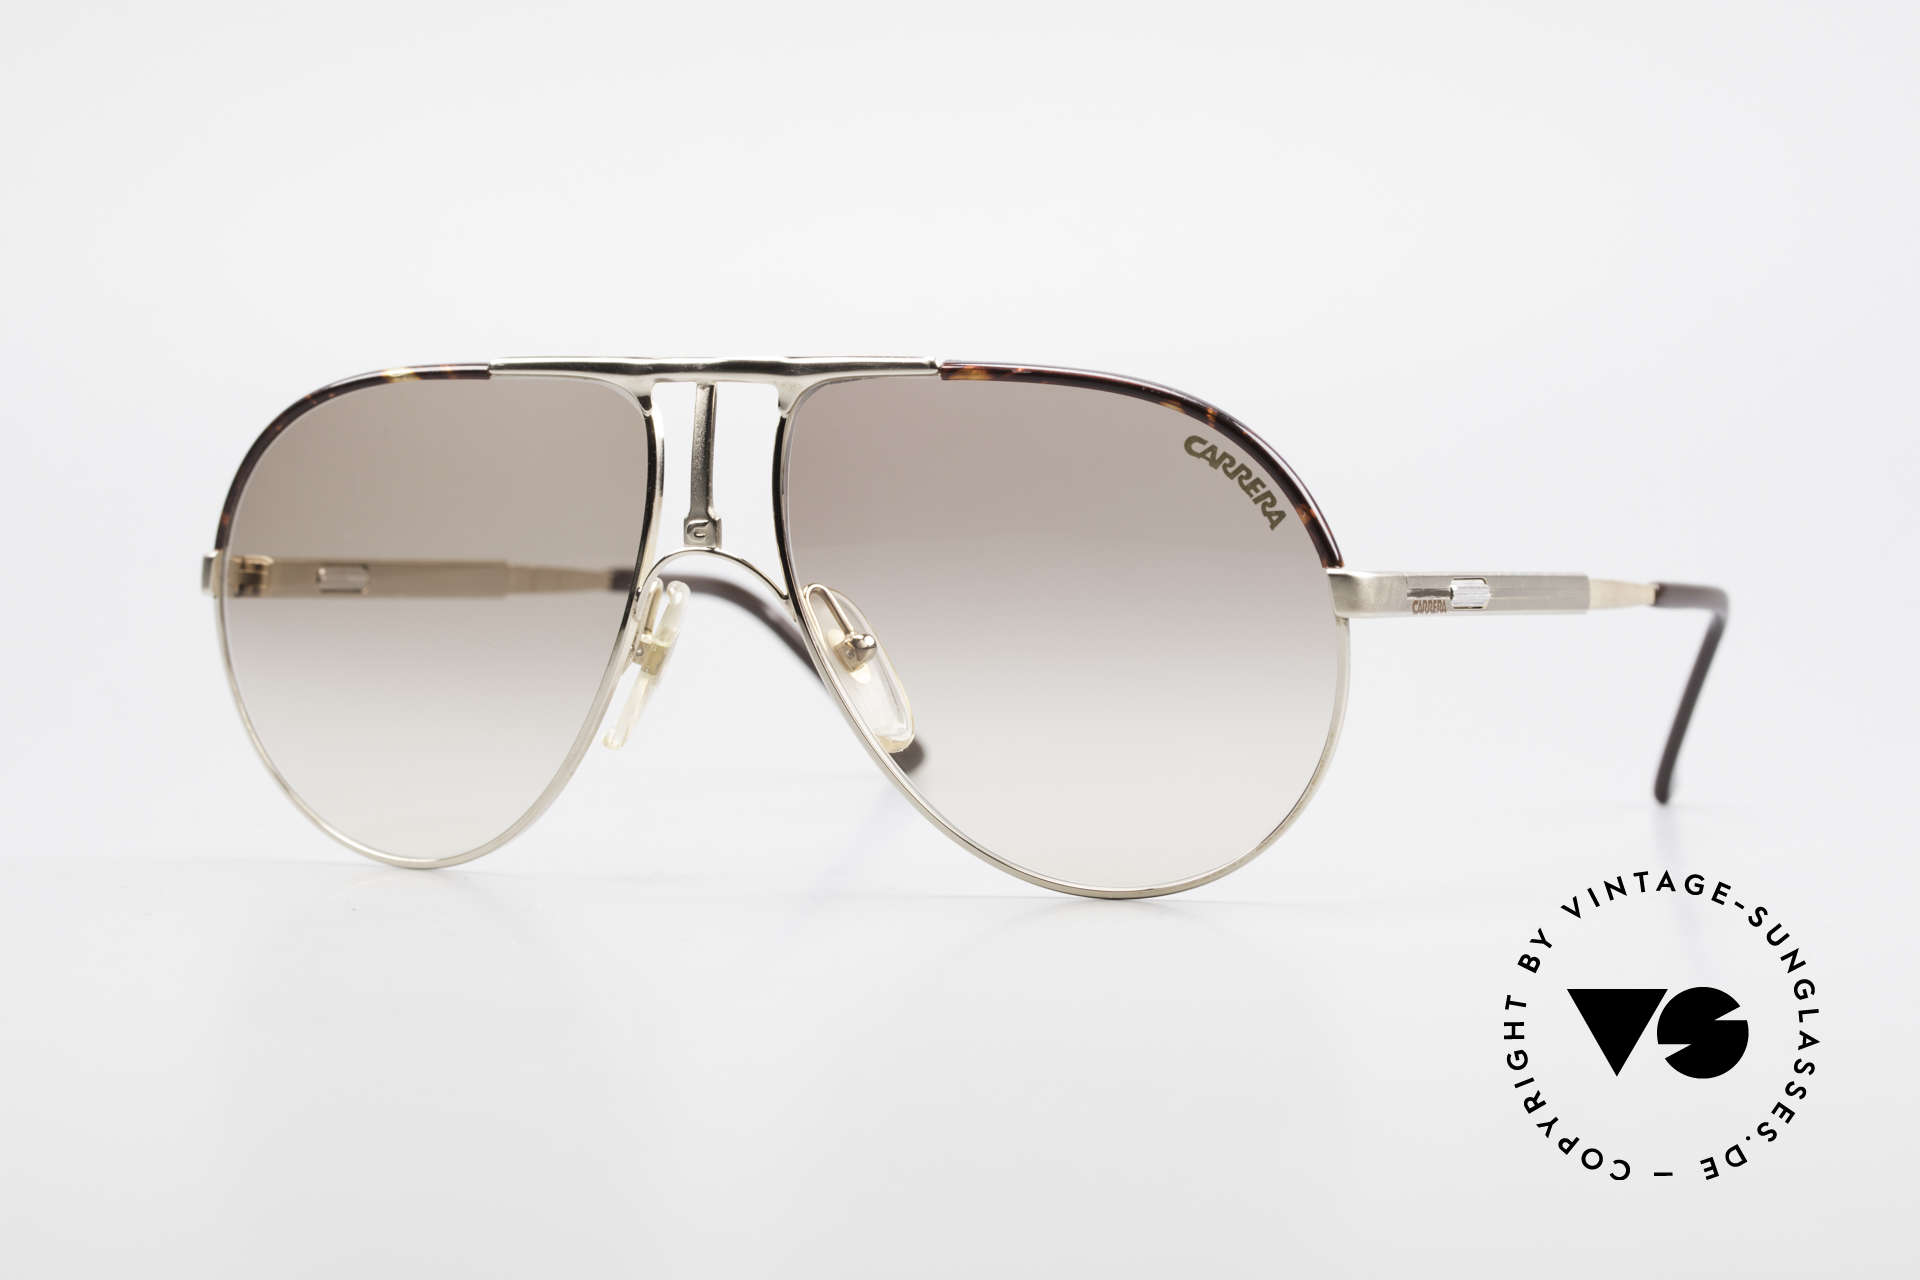 Carrera 5306 Brad Pitt Vintage Sunglasses, famous designer sunglasses by Carrera from the 80s/90s, Made for Men and Women